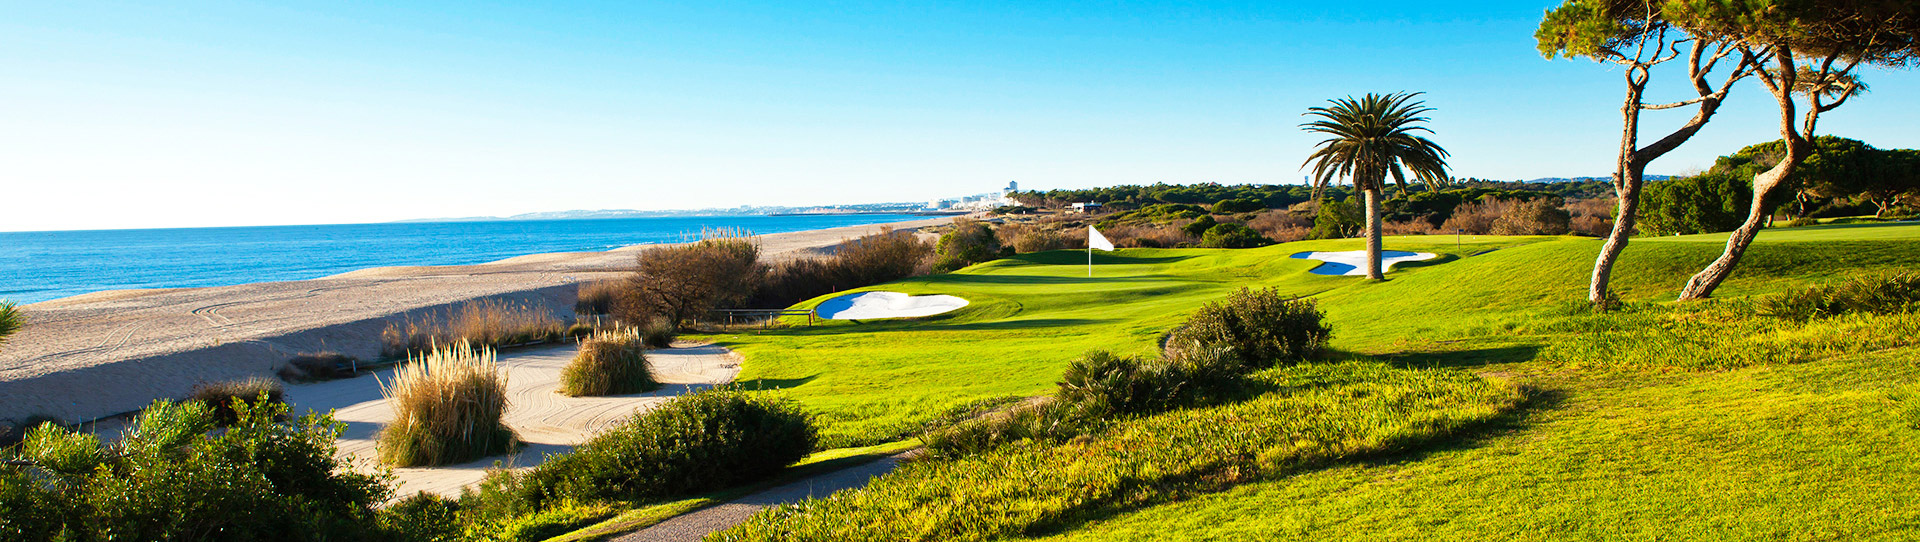 Vale do Lobo Double Joy - Photo 1